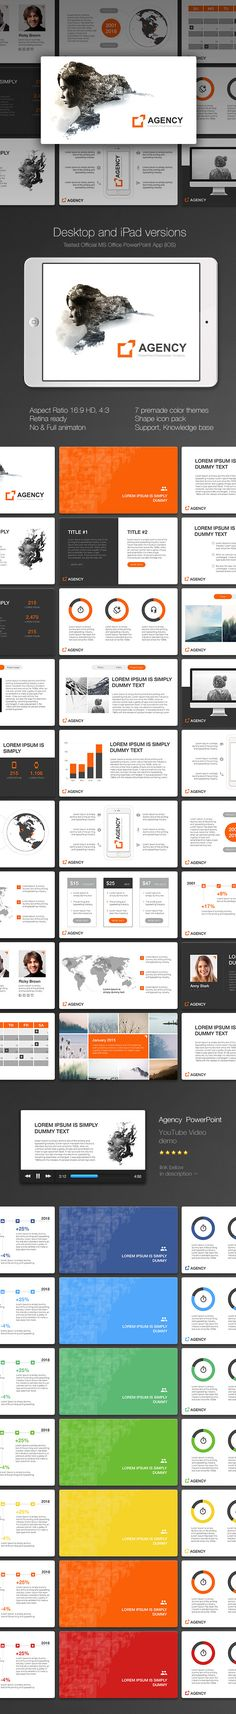 Agency PowerPoint Presentation Template #slides Download here: http://graphicriver.net/item/agency-powerpoint/14602025?ref=ksioks